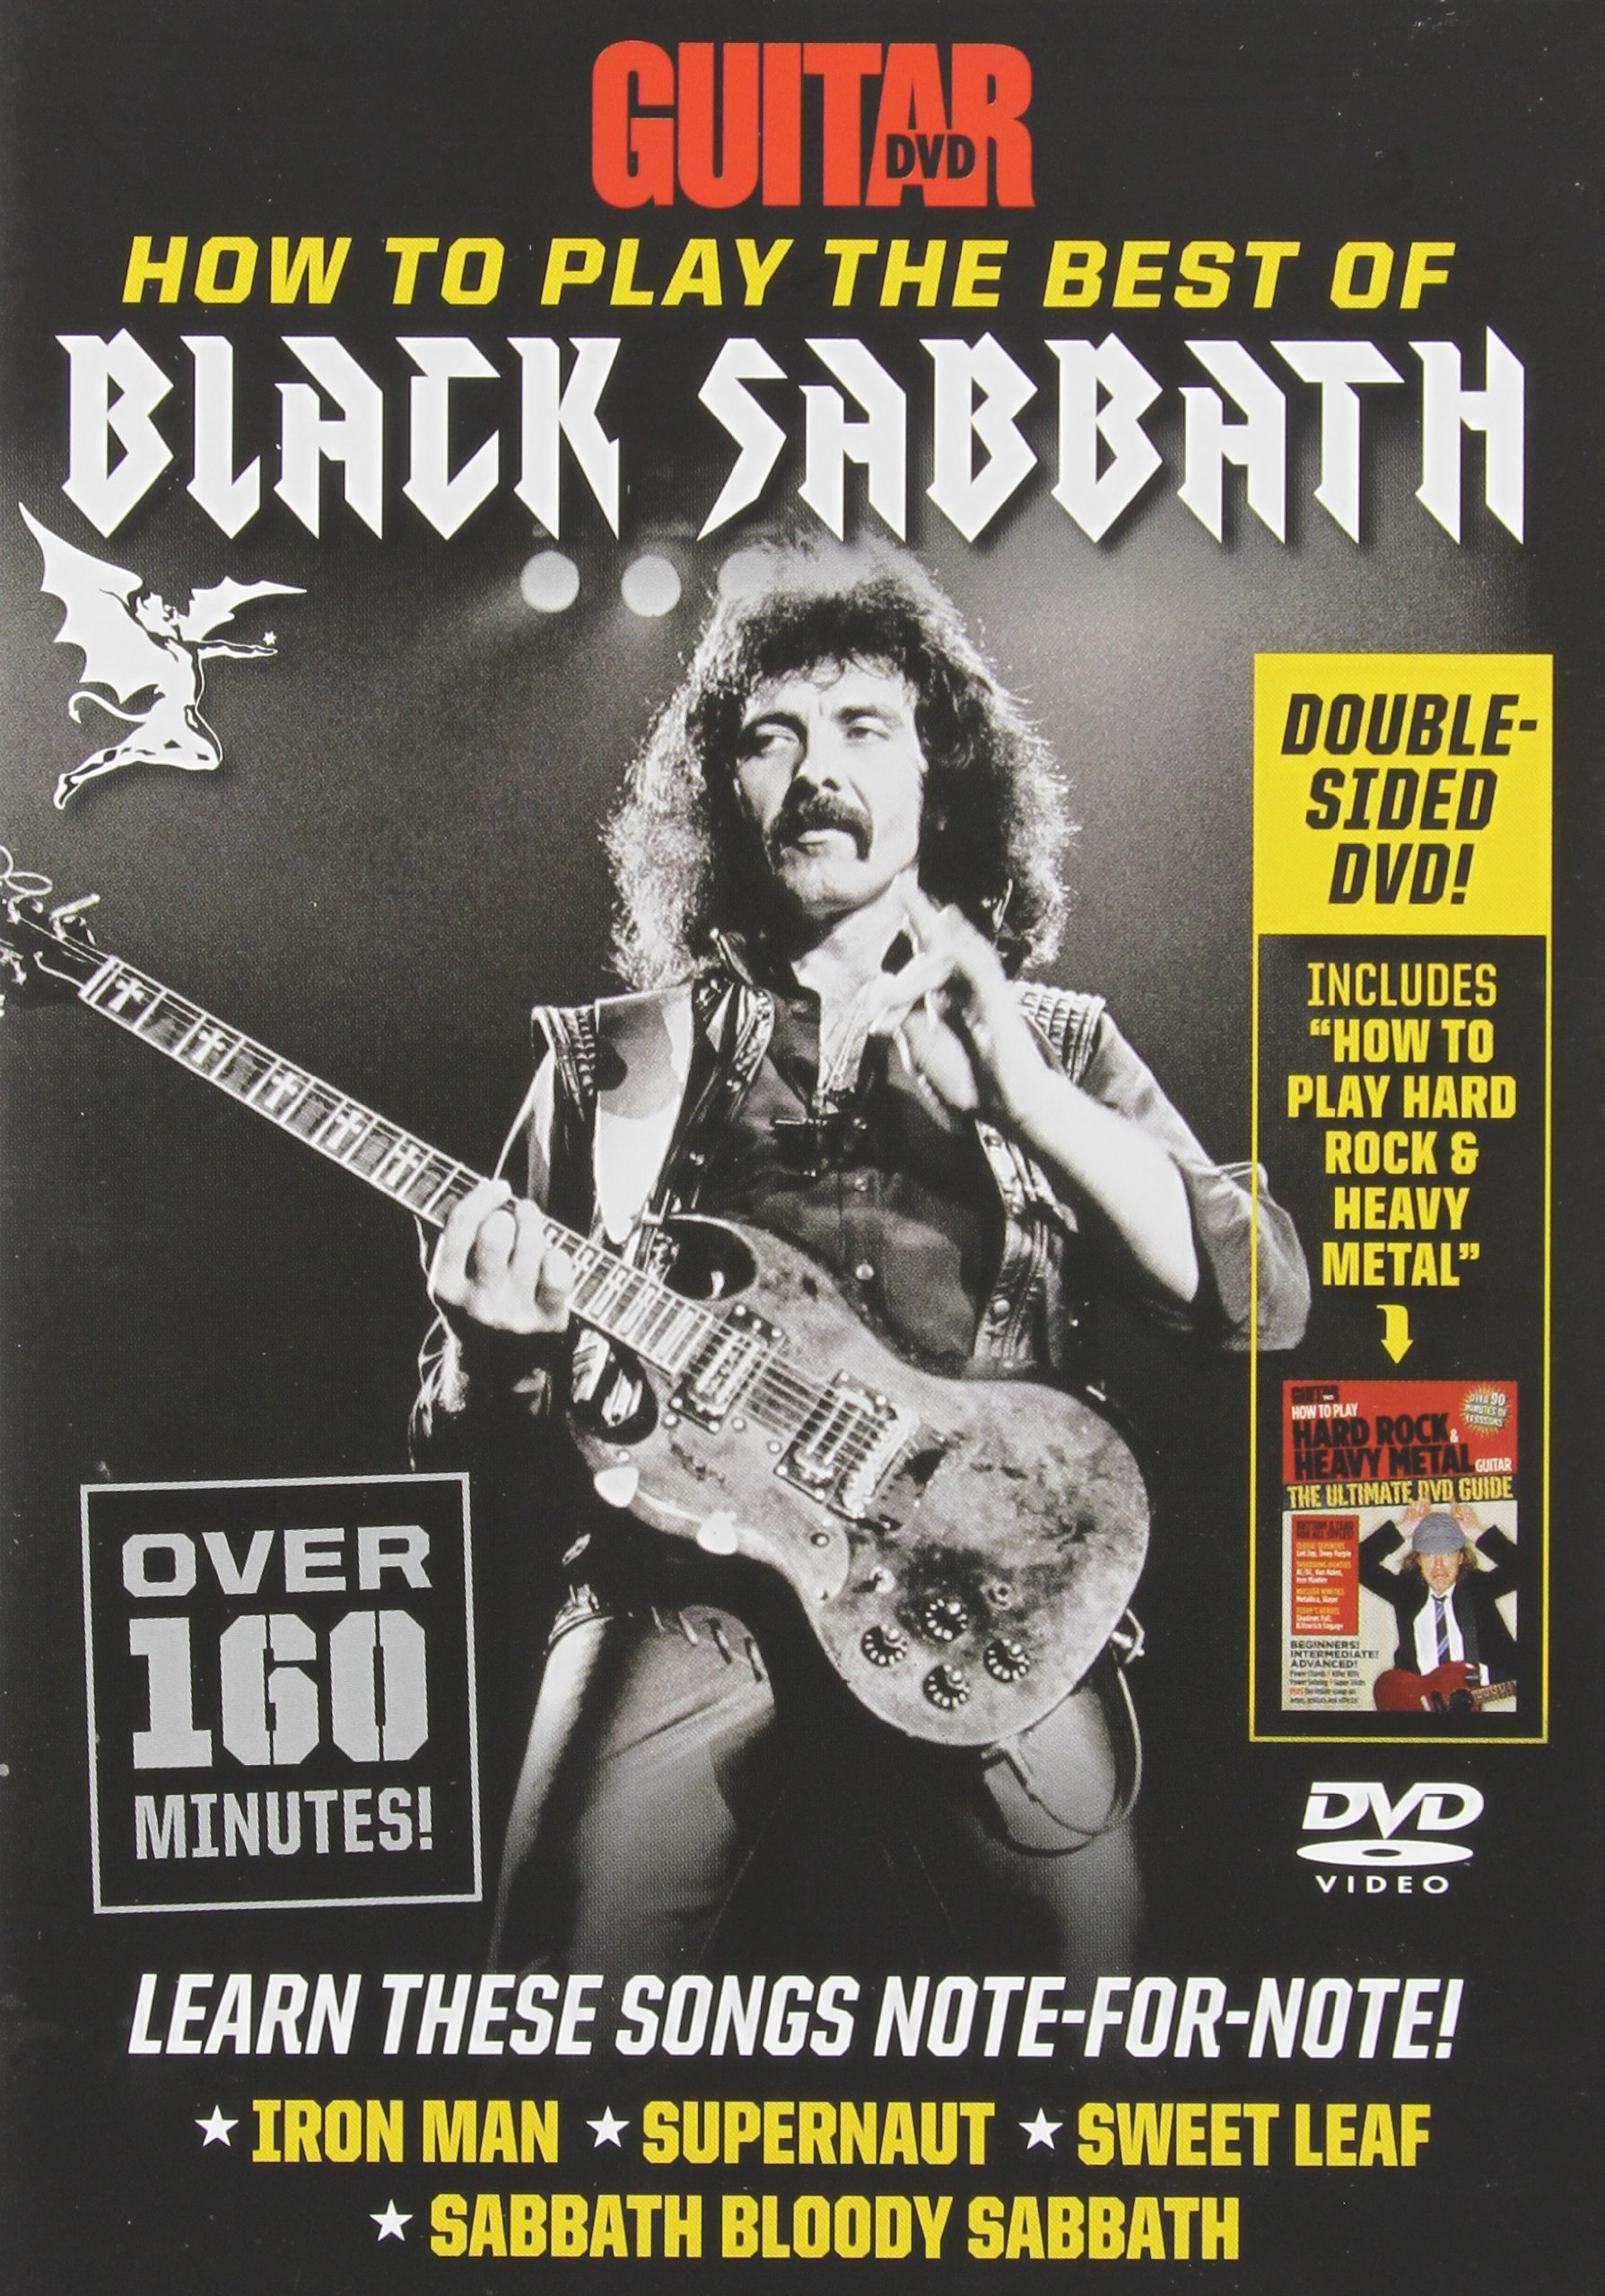 DVD : Andy Aledort - Guitar World: How To Play The Best Of Black Sabbath (DVD)